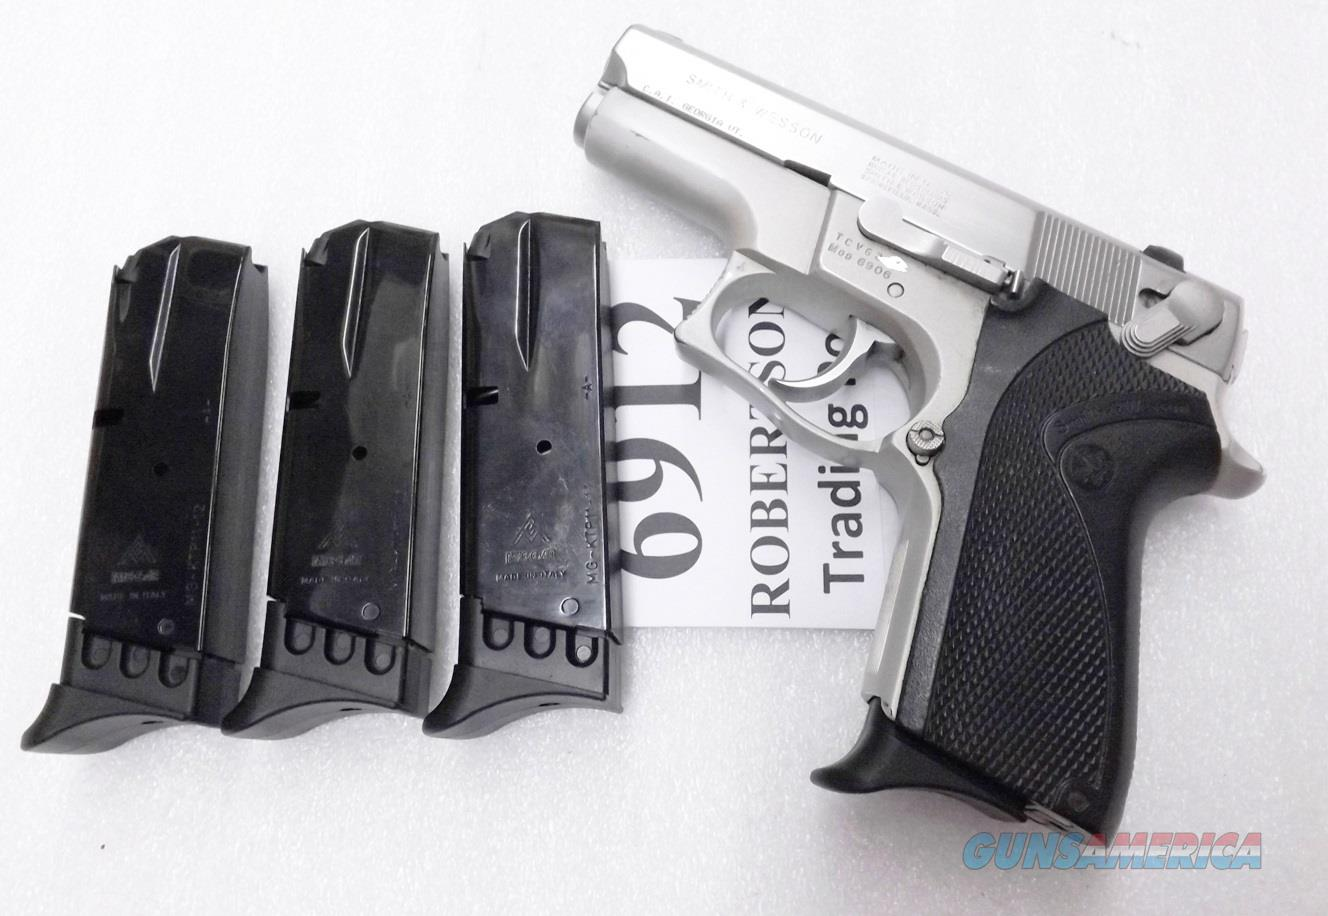 3 Smith & Wesson 6906 Magazines 12 Shot Mec-Gar S&W models 469 669 6904 6900 Series 19055 type 6912 New Blue KTCP1112 with Finger RestTail Piece $26.00 each Free Ship Lower 48  Non-Guns > Magazines & Clips > Pistol Magazines > Smith & Wesson